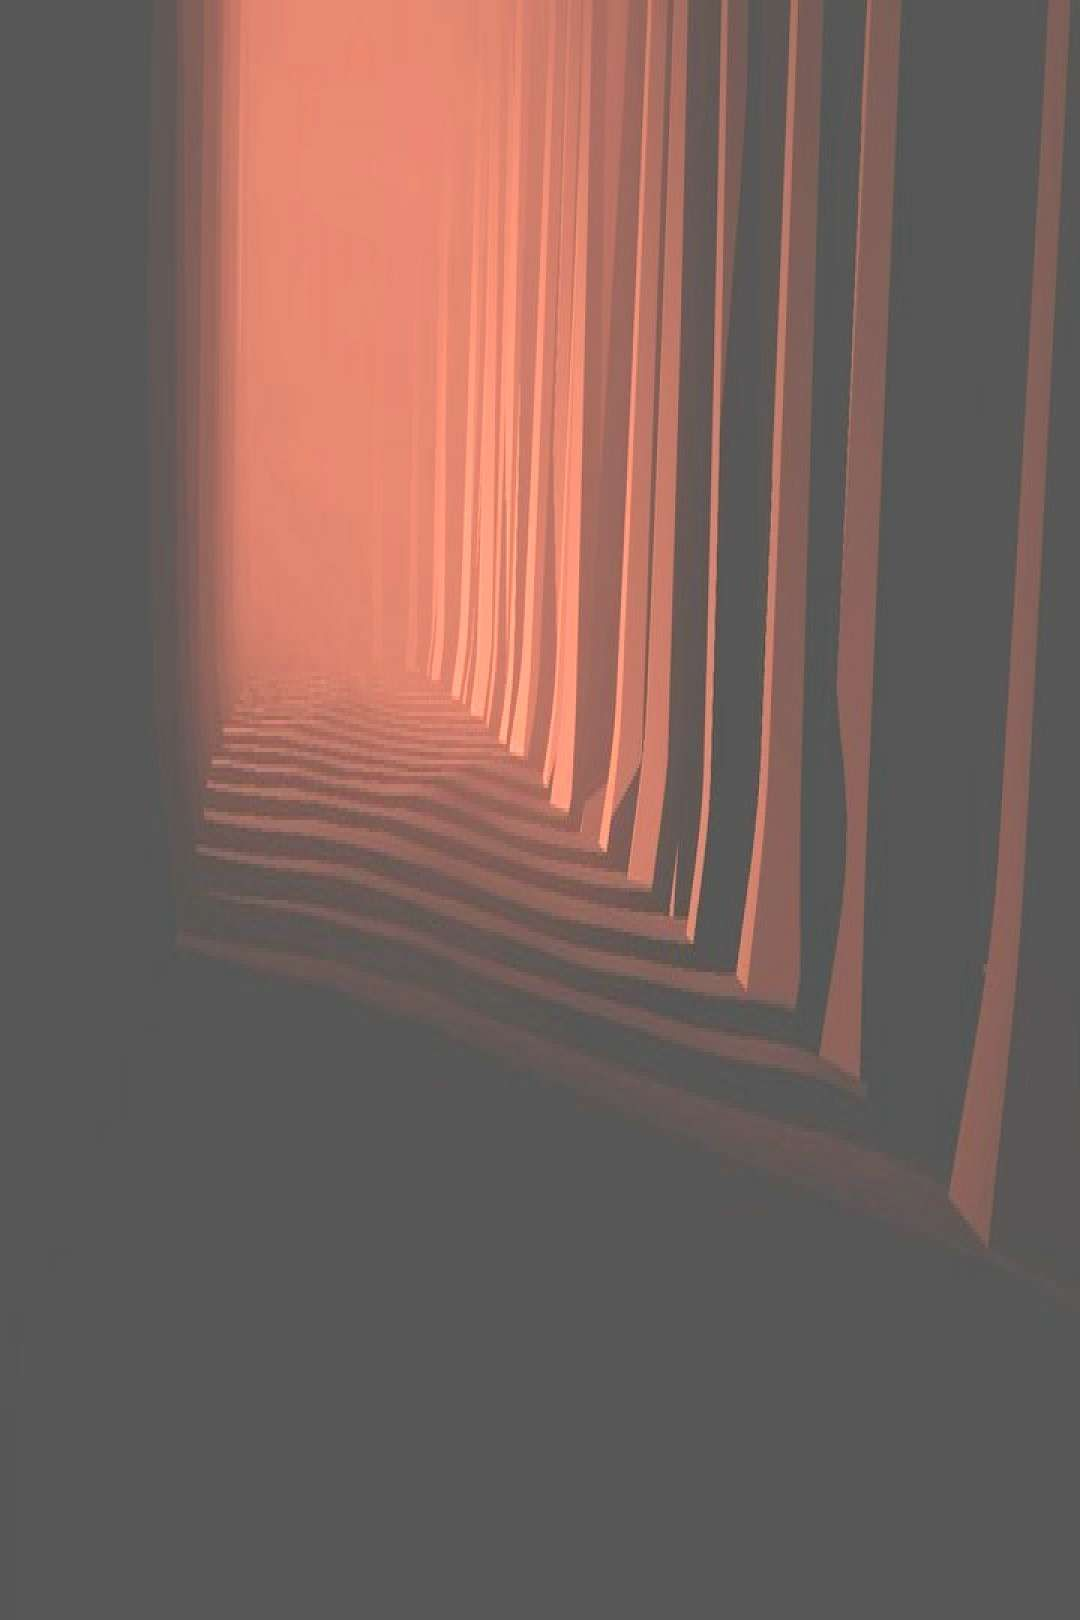 #intensity #movement #cinema4d #simple #light #love #006 #and #the #way #no #sh No #006. Simple intensity and light movement. Love the way the shYou can find Cinema 4d and more on our website.No #006. Simple intensity and light movement...